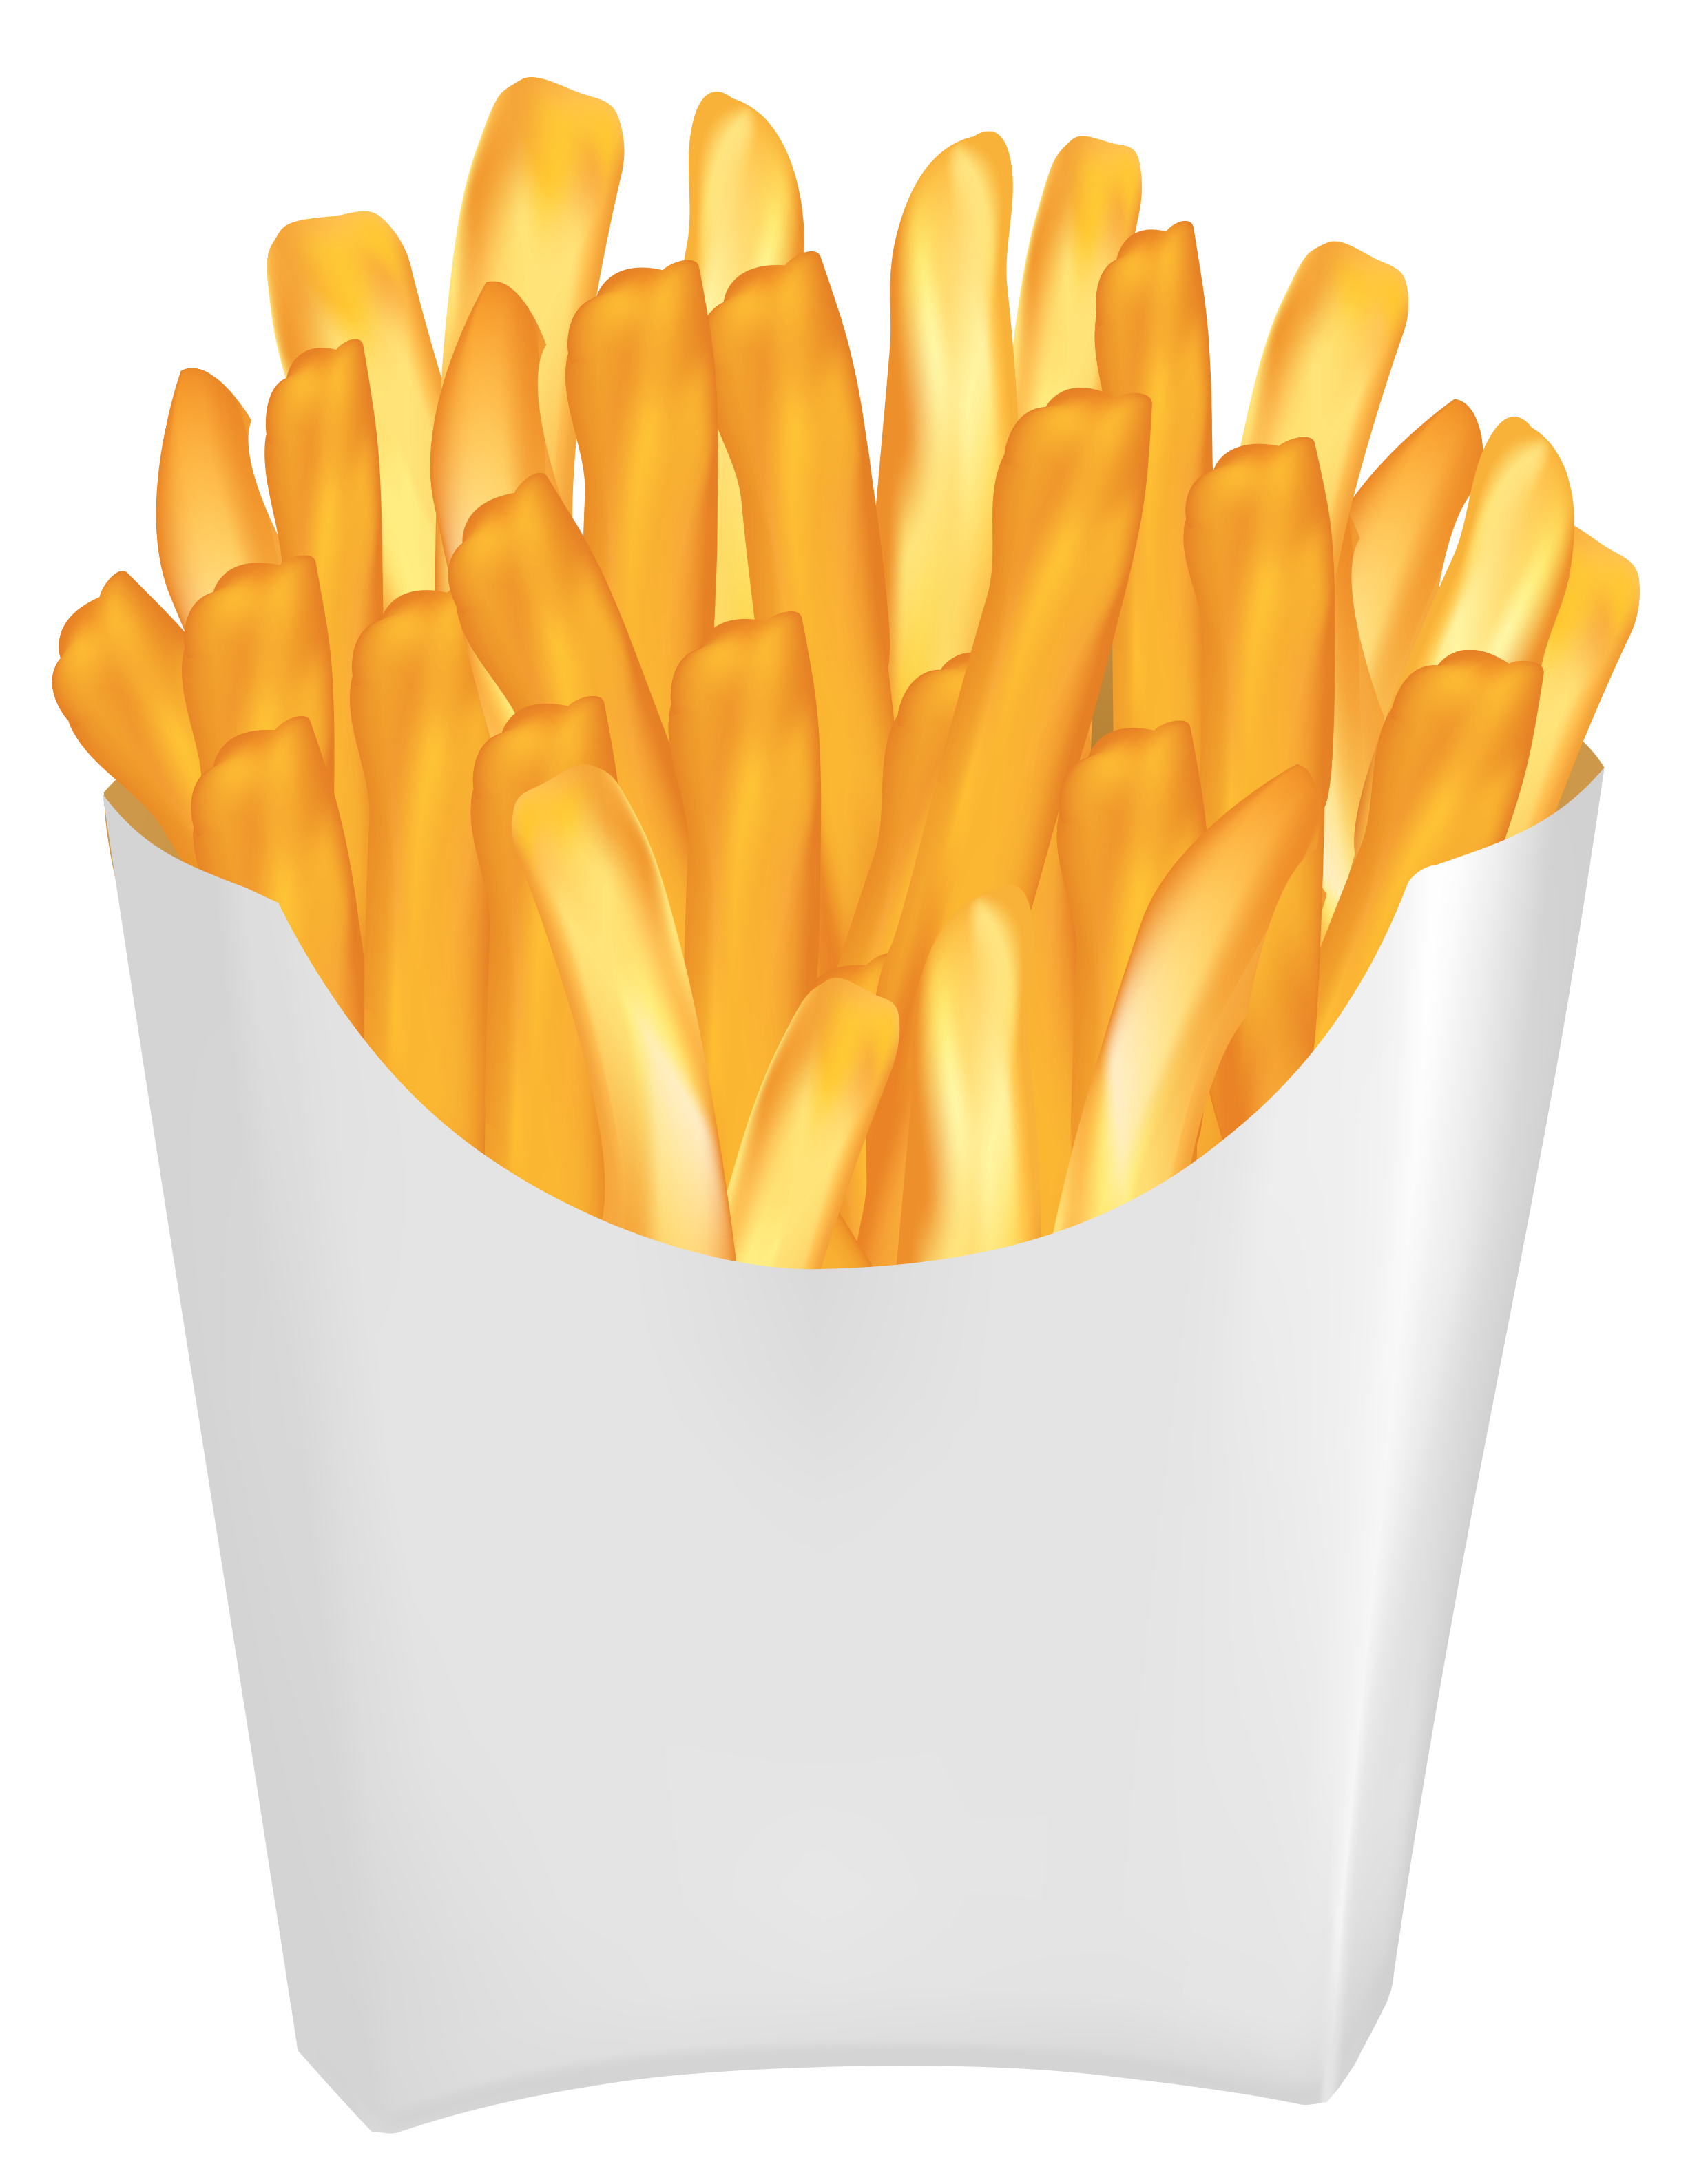 French Fries PNG Vector Clipart Image.